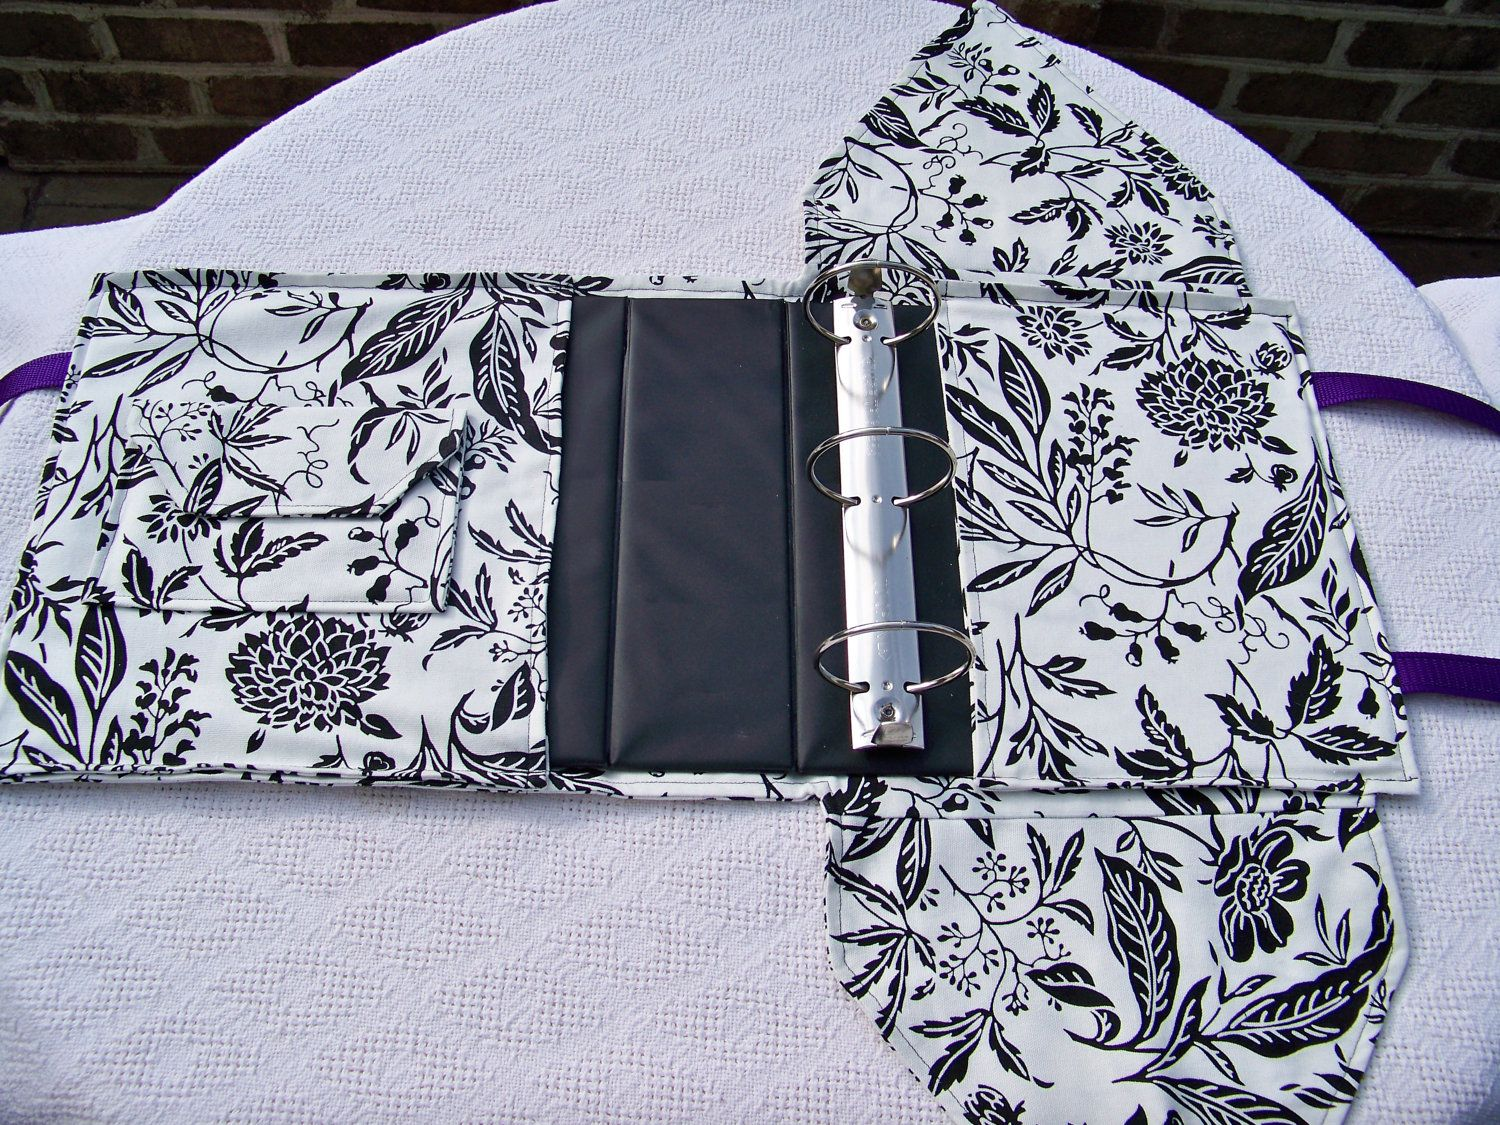 Q-TOTE Coupon Binder Cover. $35.00, via Etsy.